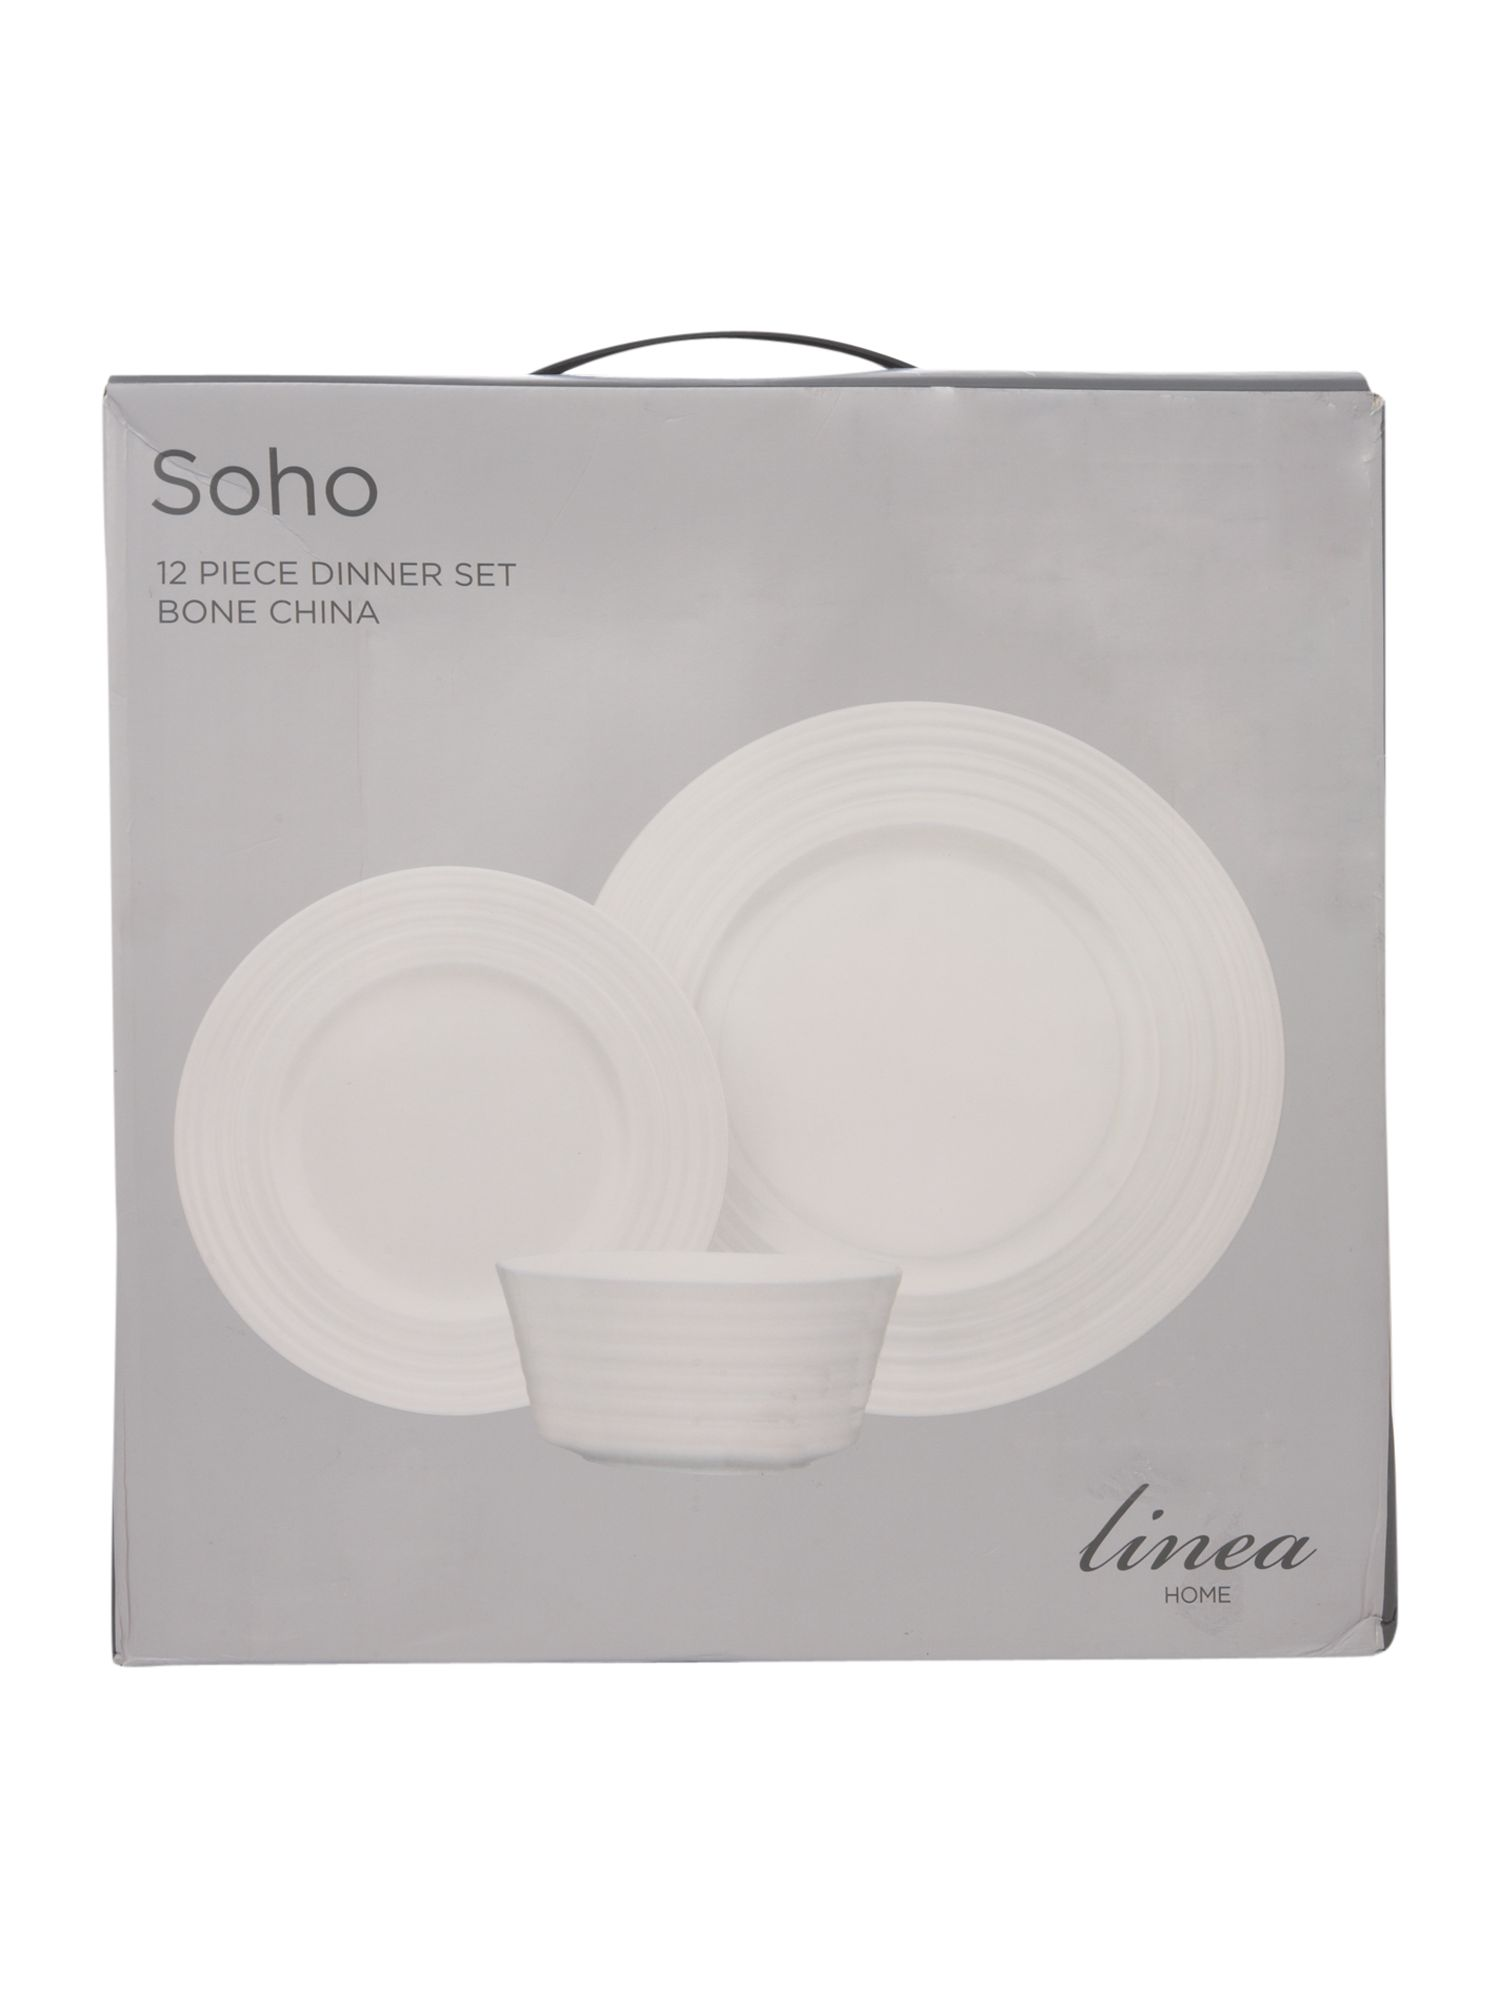 Soho 12 piece dinner set